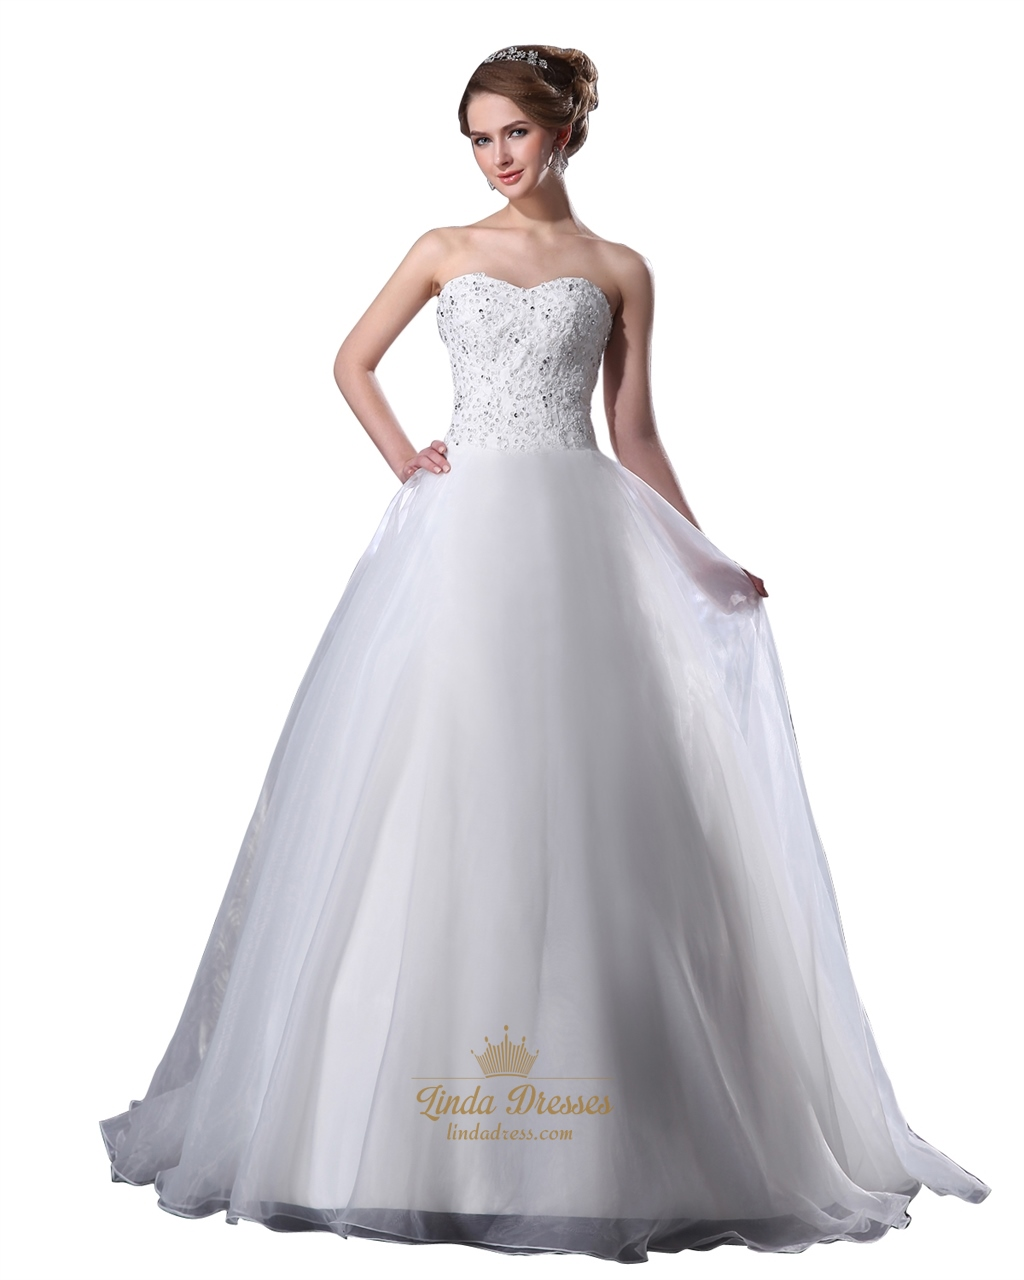 White Organza Sweetheart Strapless Beaded Bodice Aline